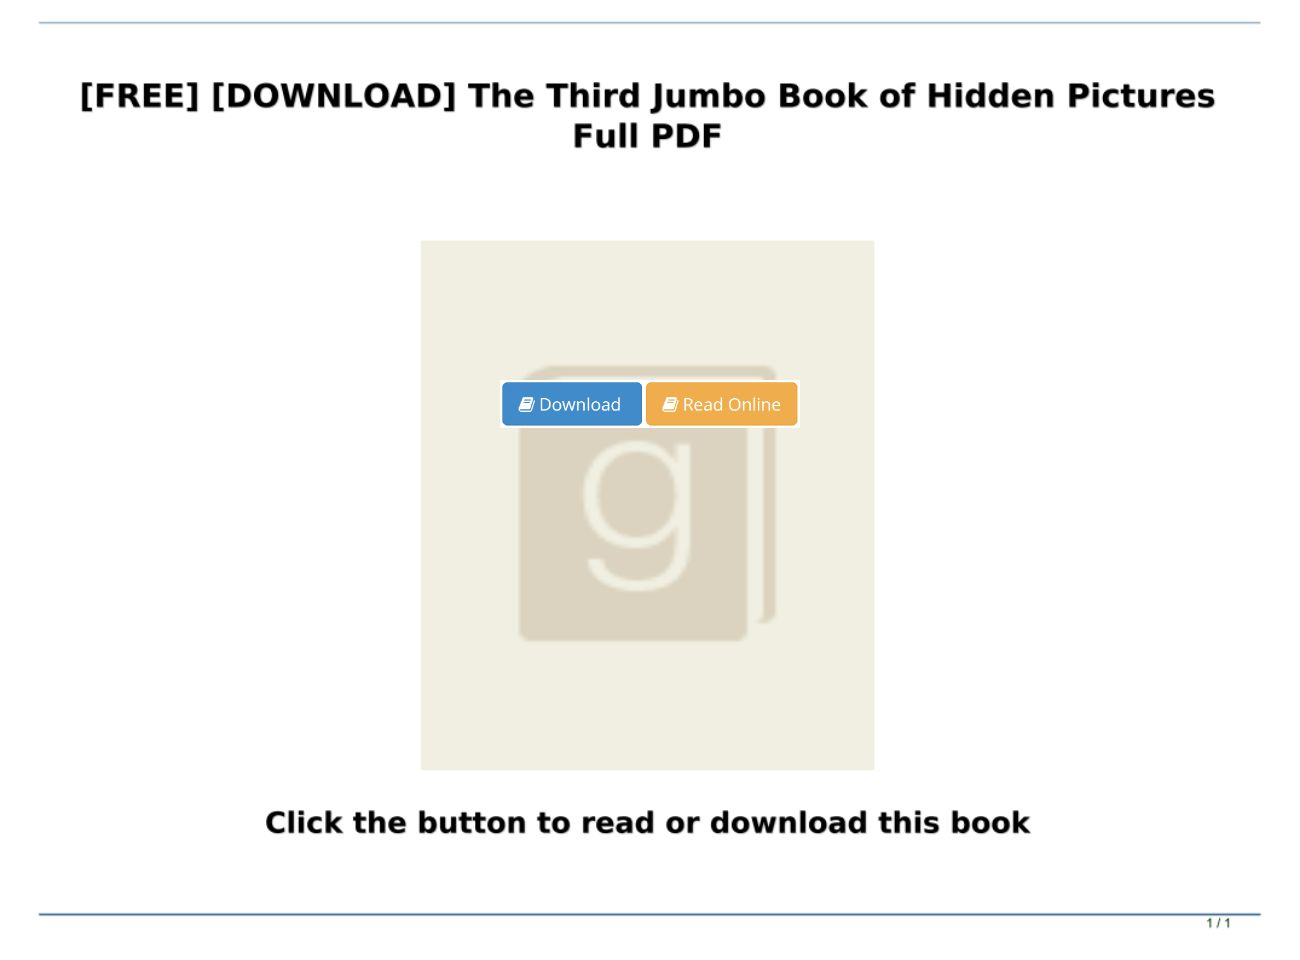 Hidden Pictures Pdf Free Download